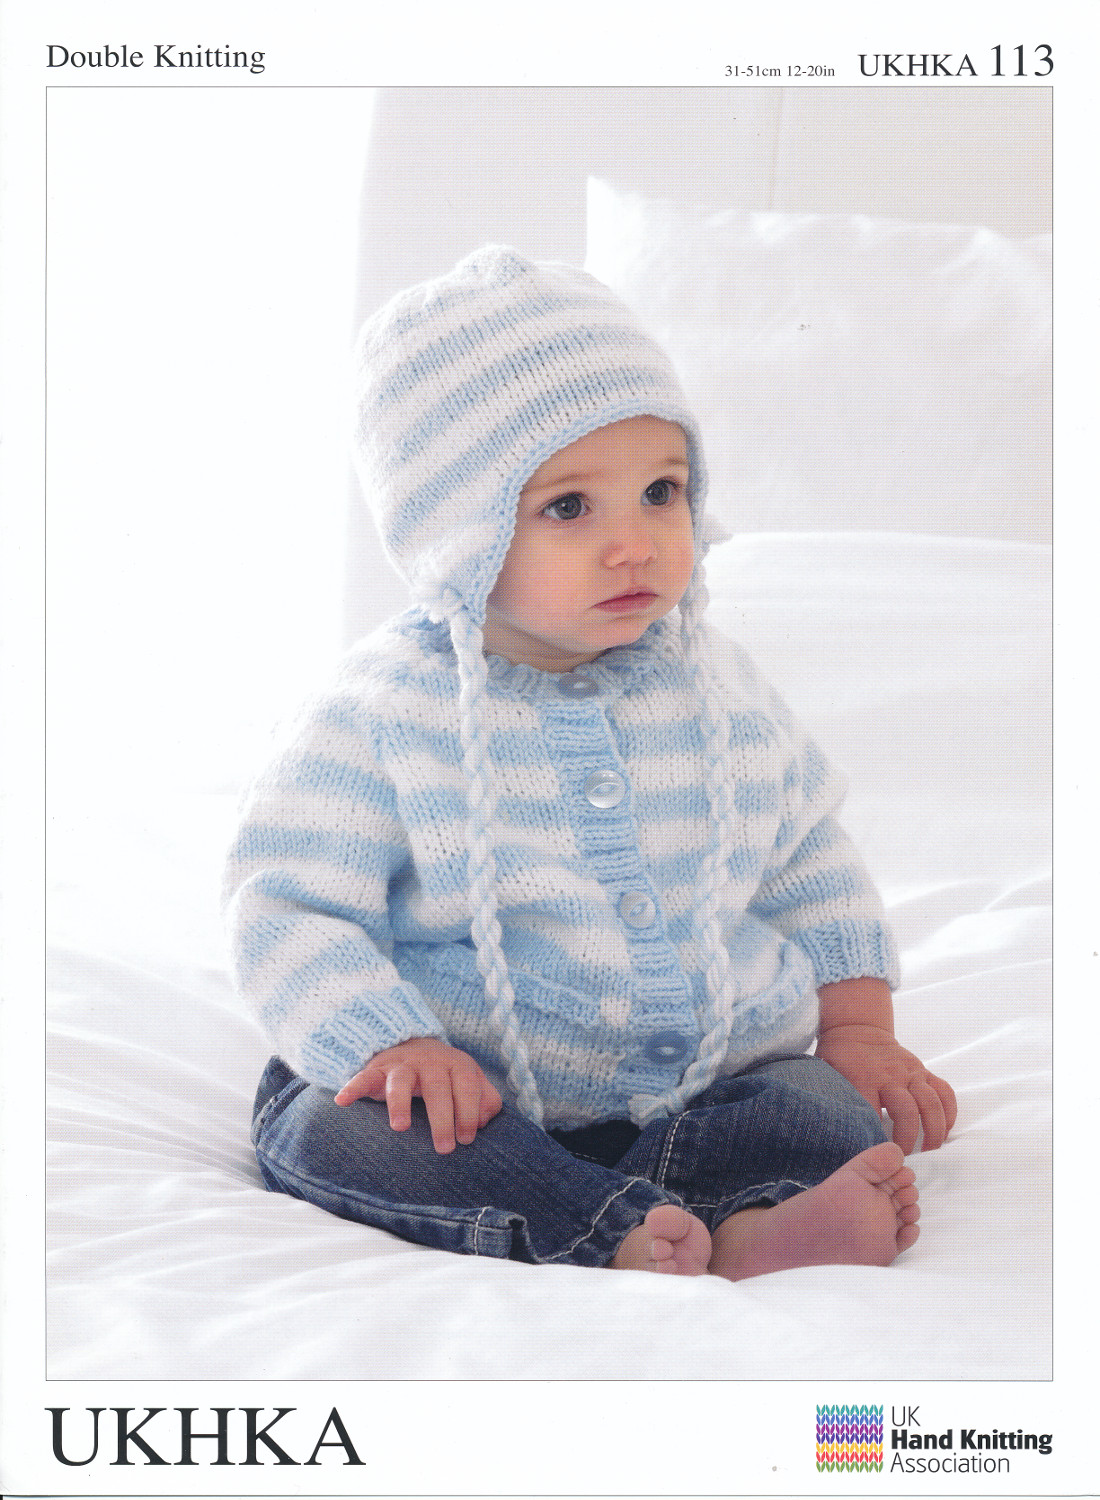 Double knitting dk pattern baby striped cardigan tassel helmet double knitting dk pattern baby striped cardigan tassel helmet hat ukhka 113 bankloansurffo Gallery